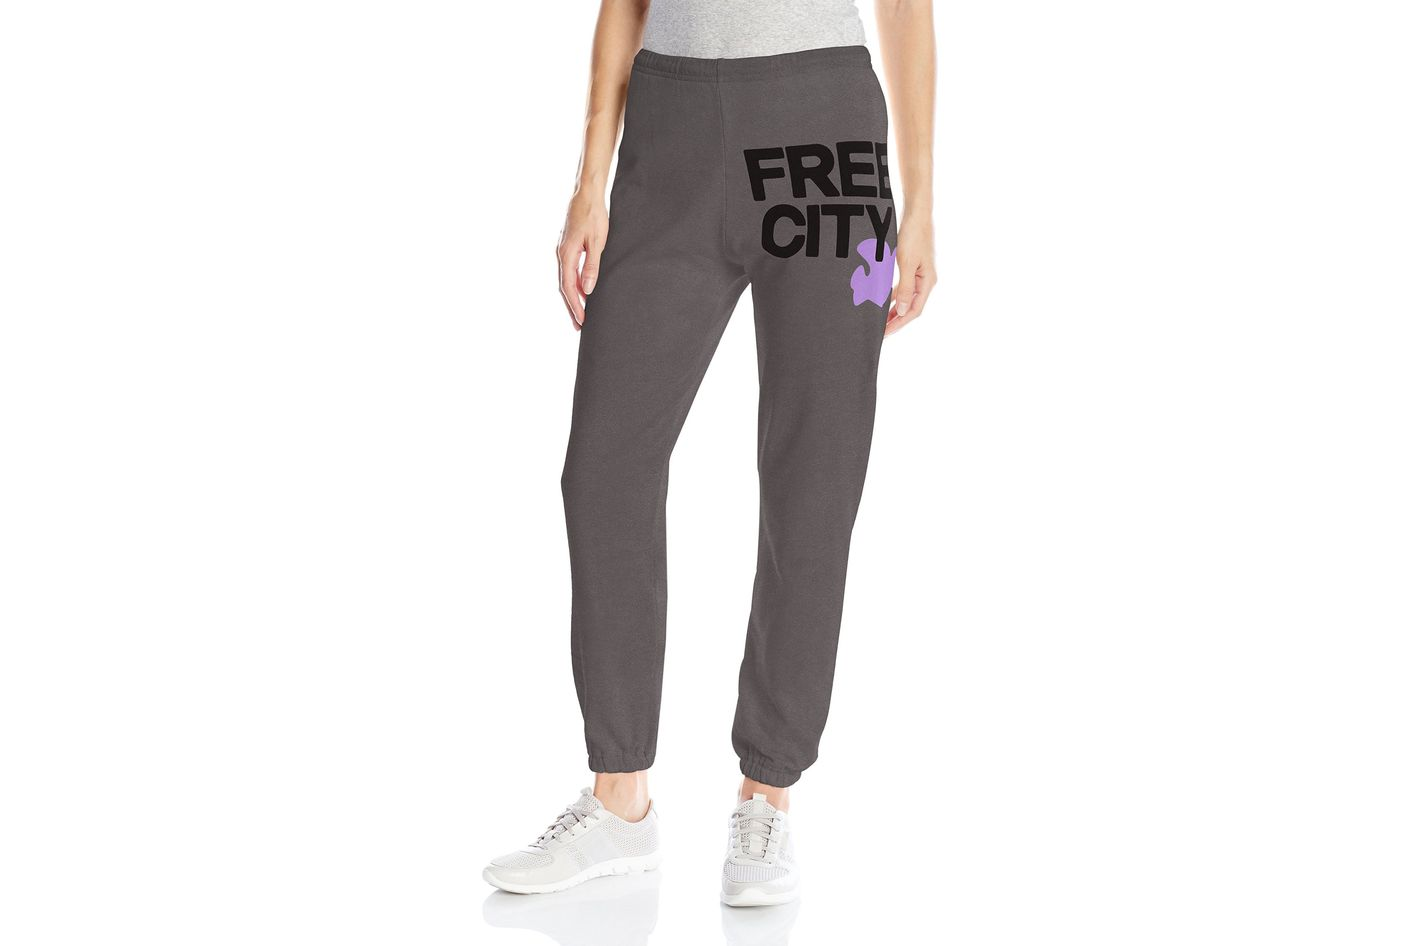 Free City Women's Sweatpants